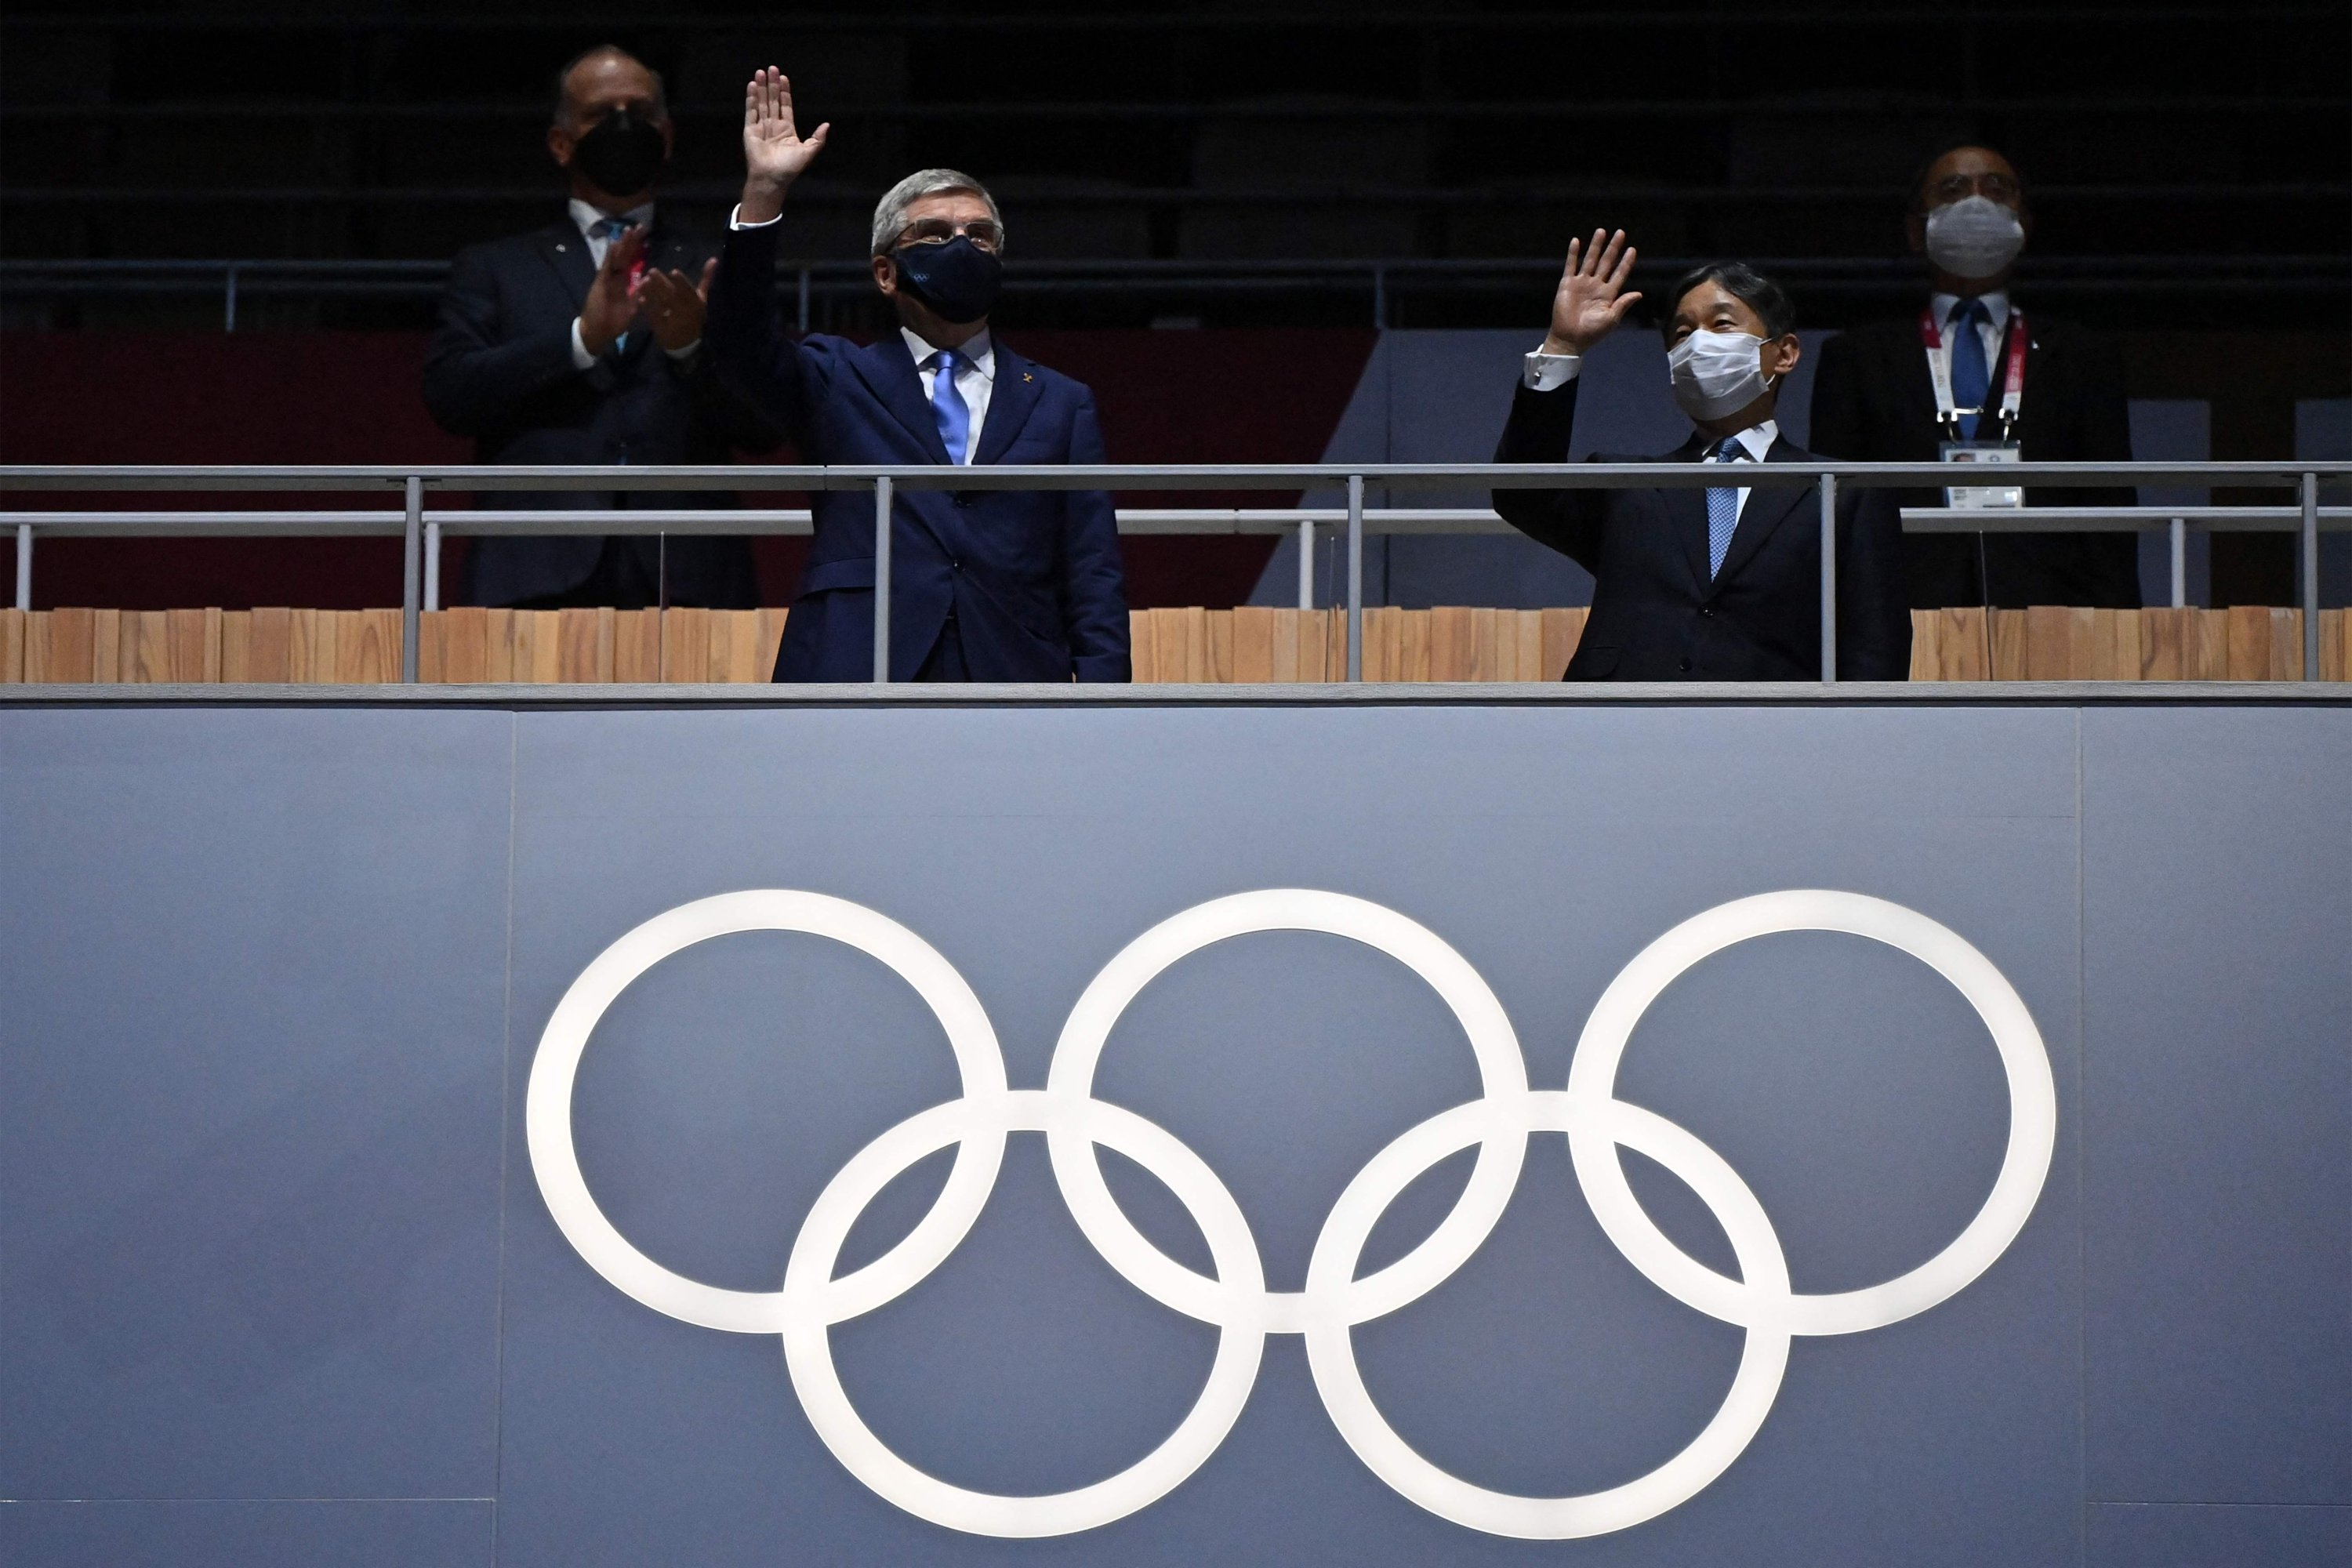 President of the International Olympic Committee (IOC) Thomas Bach (L) and Japan's Emperor Naruhito wave during the opening ceremony of the Tokyo 2020 Olympic Games, at the Olympic Stadium, in Tokyo, Japan, July 23, 2021. (AFP Photo)